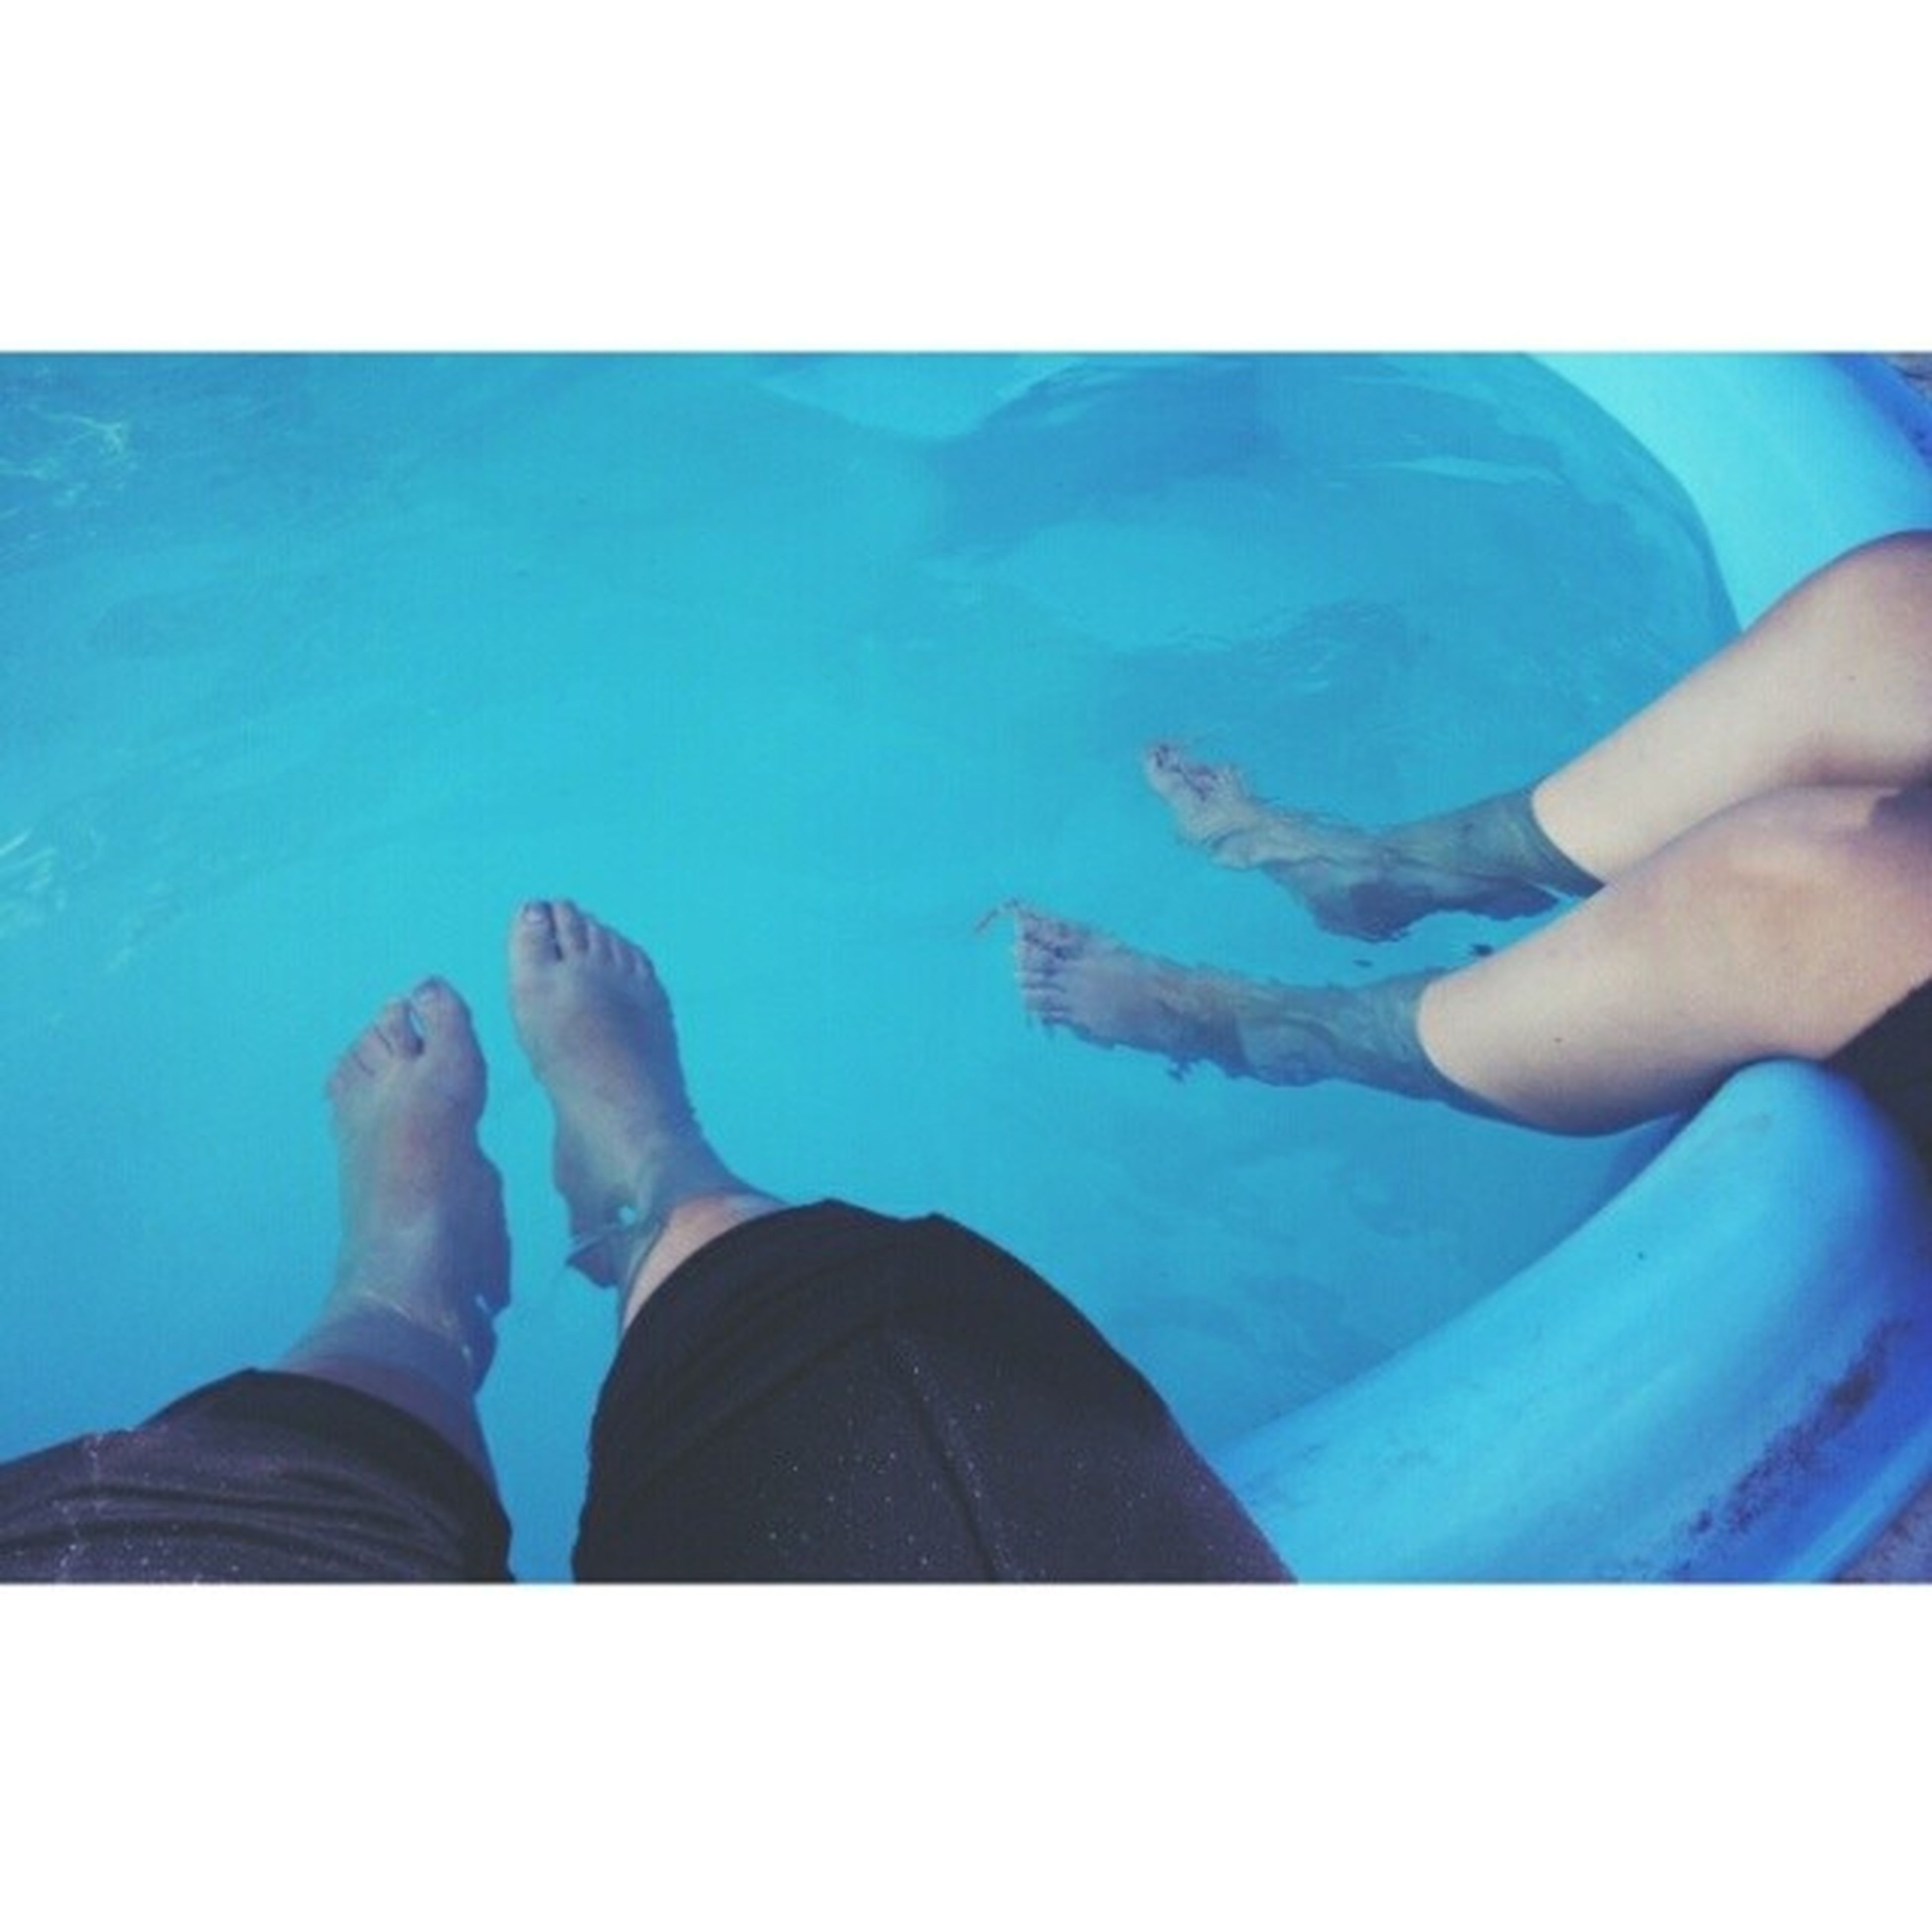 lifestyles, transfer print, leisure activity, low section, person, men, auto post production filter, water, togetherness, personal perspective, blue, relaxation, standing, sitting, human foot